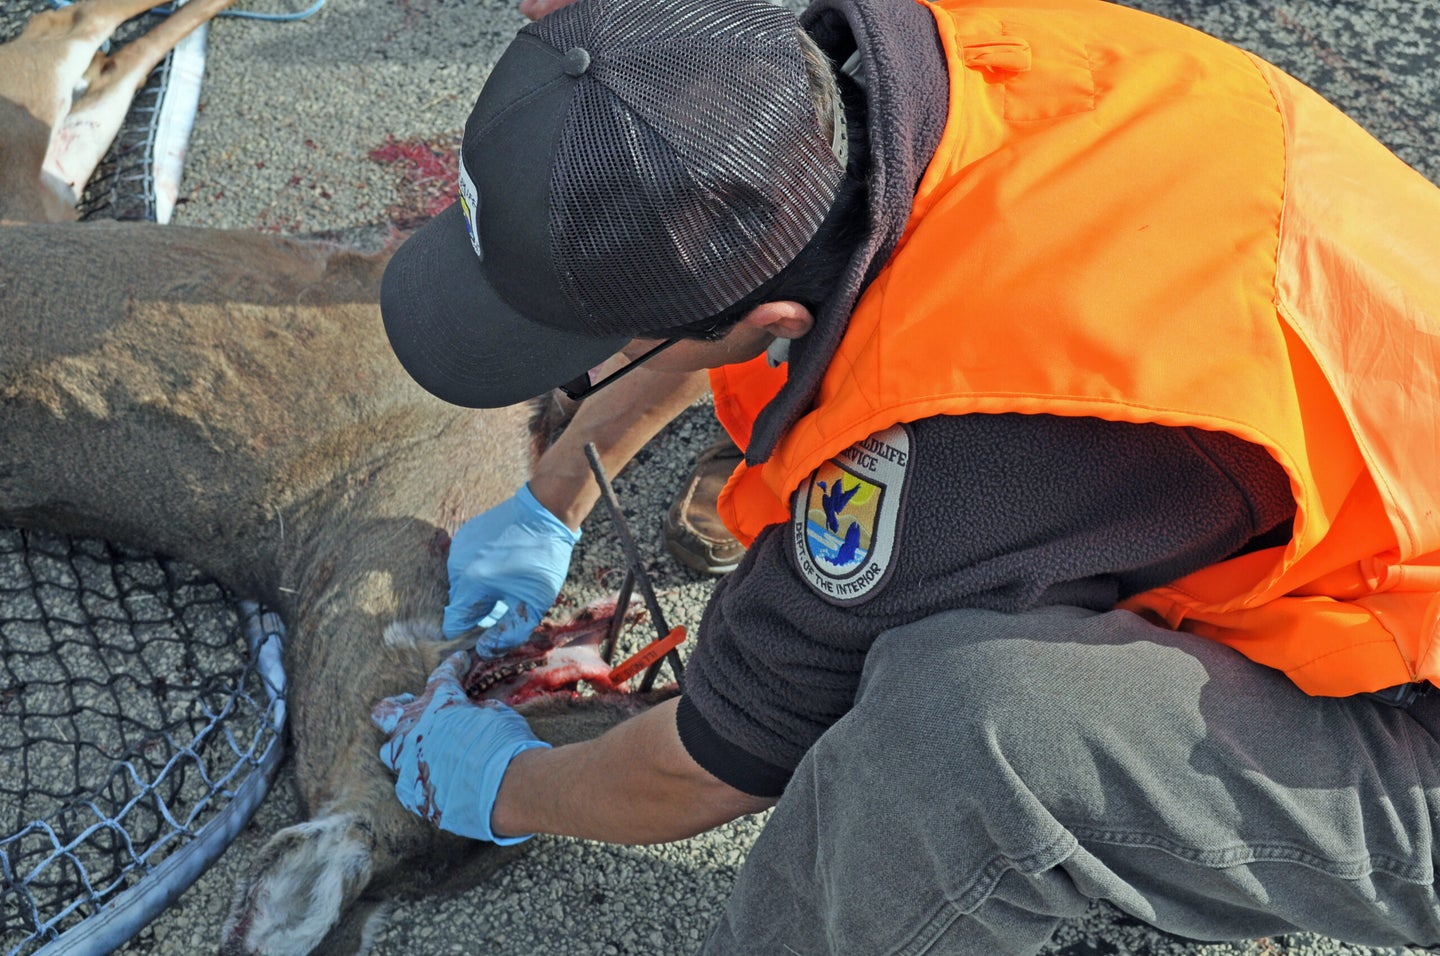 A CWD outbreak that originated at a deer farm in Wisconsin is causing big problems for managers.